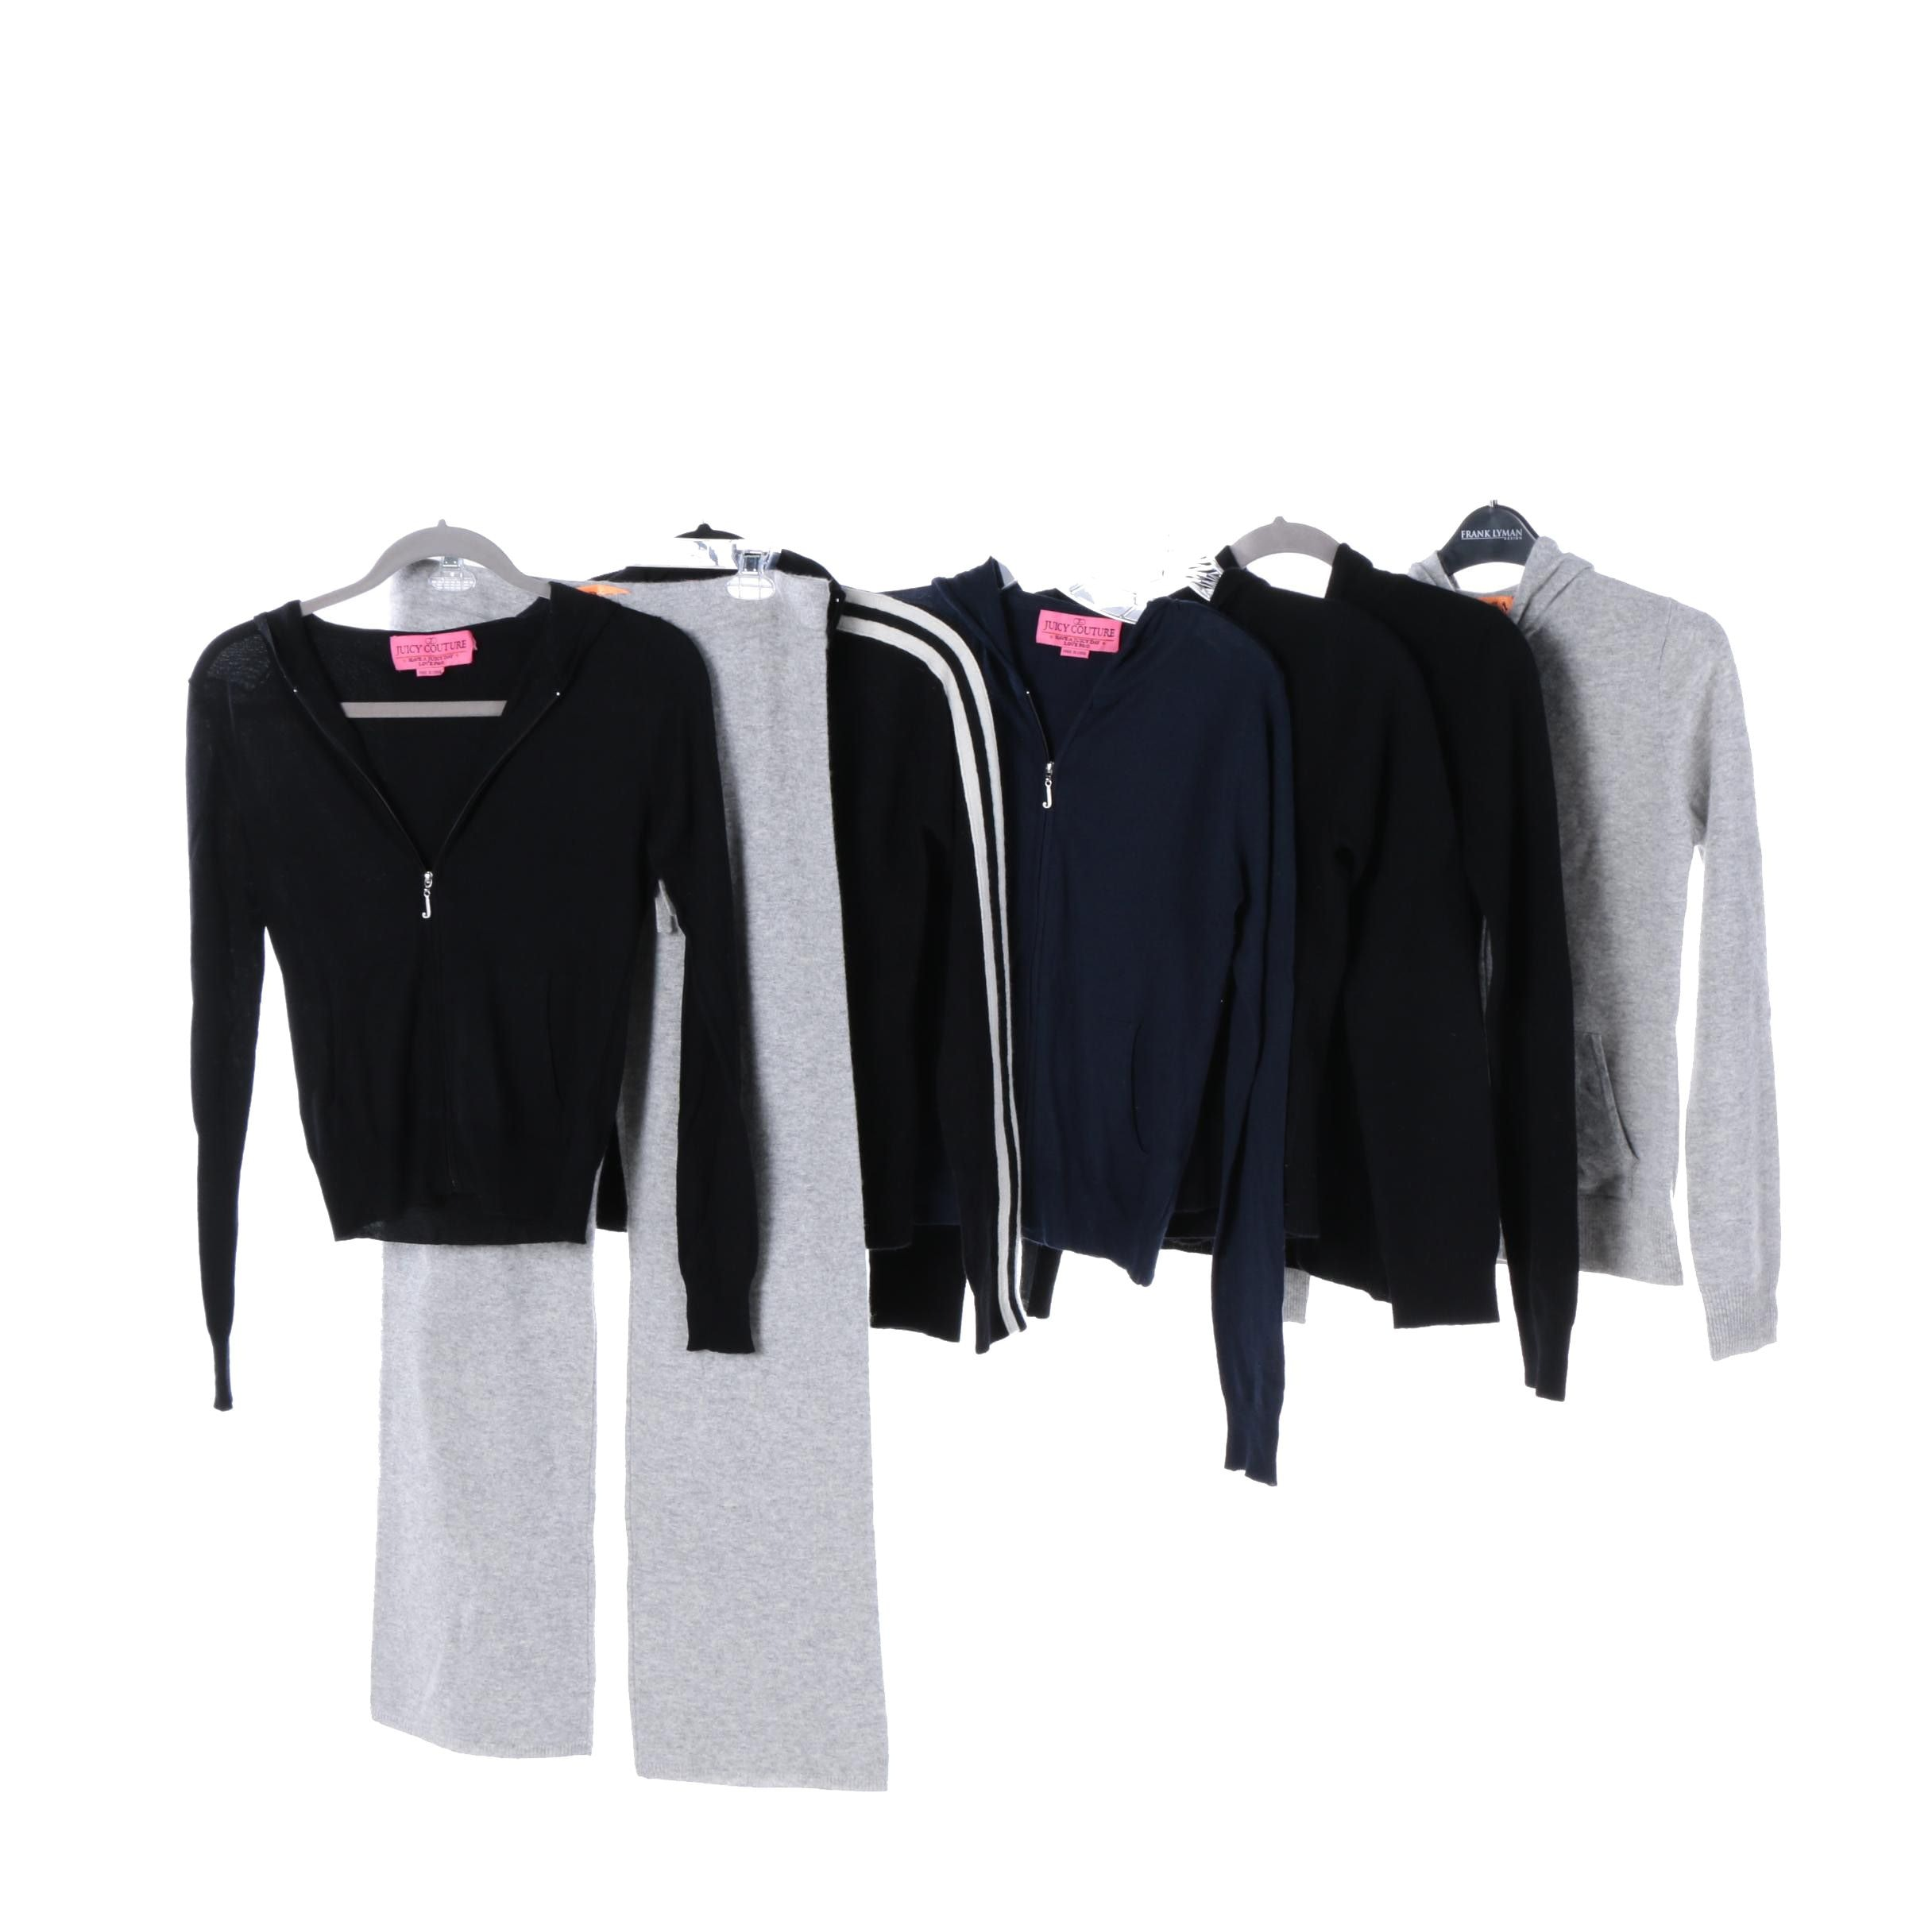 Women's Juicy Couture Hoodies and Sweatpants